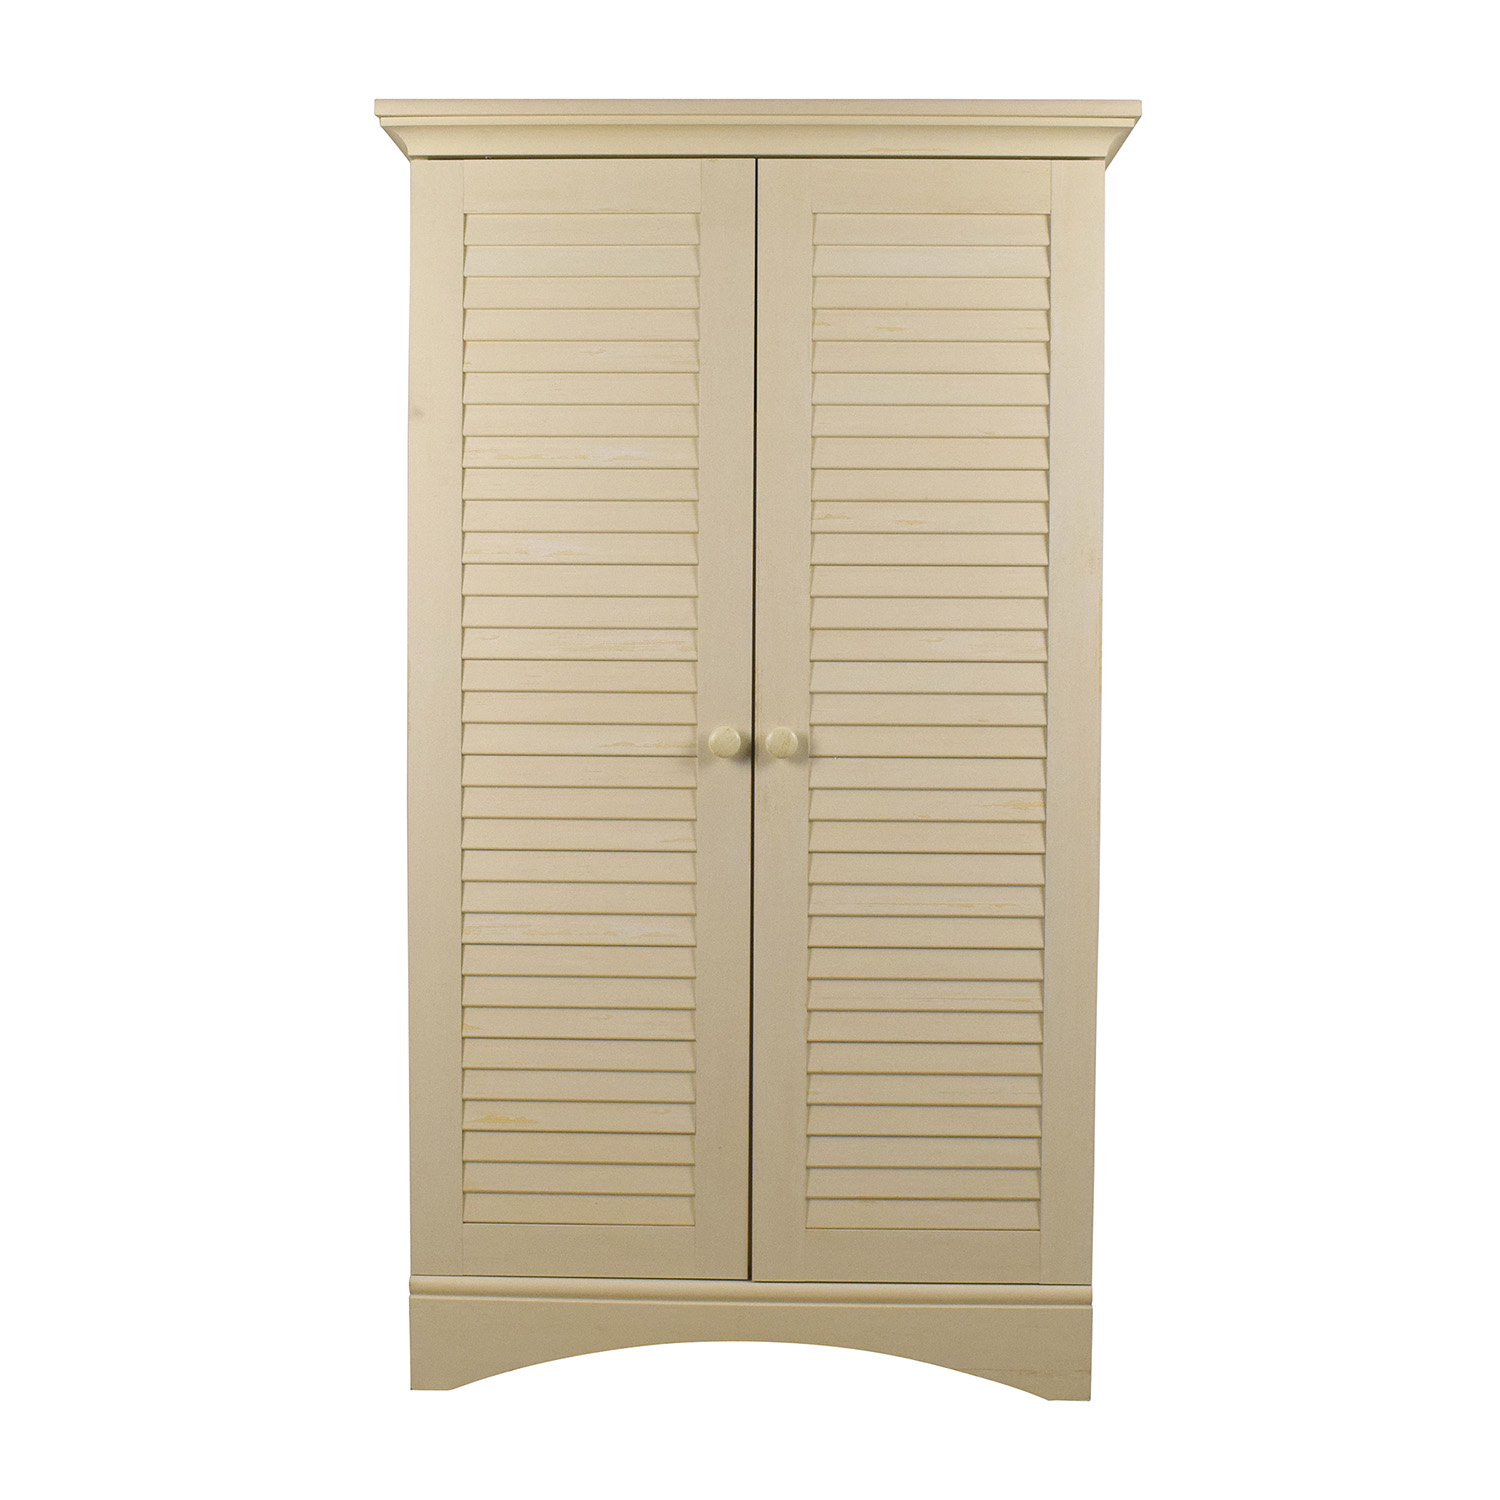 wood armoire wall closet sauder units size storage best organizers large closets cabinet of custom design shelf organizer made systems components melamine lowes wardrobe in walk top